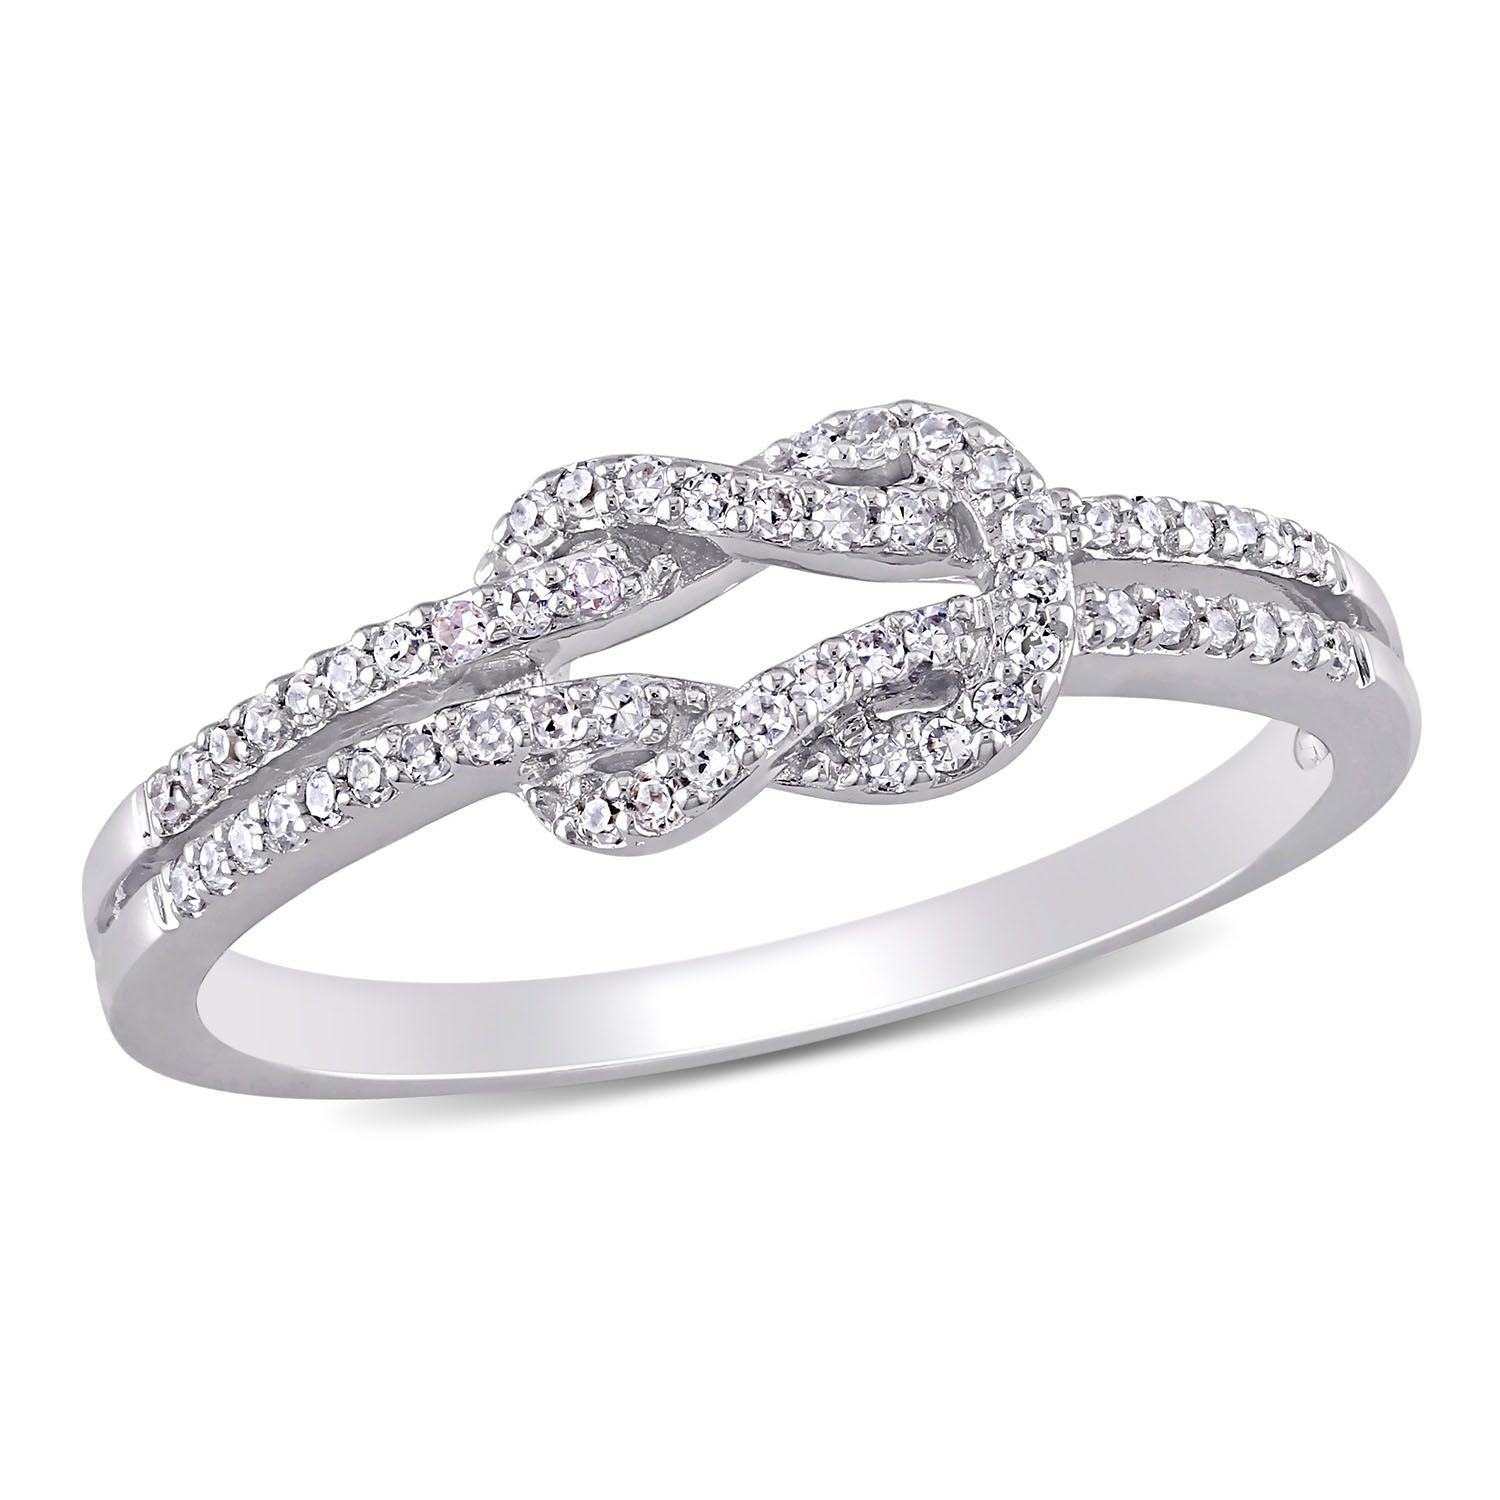 0.16 CT. T.W. Diamond Double Knot Ring in 14K Gold